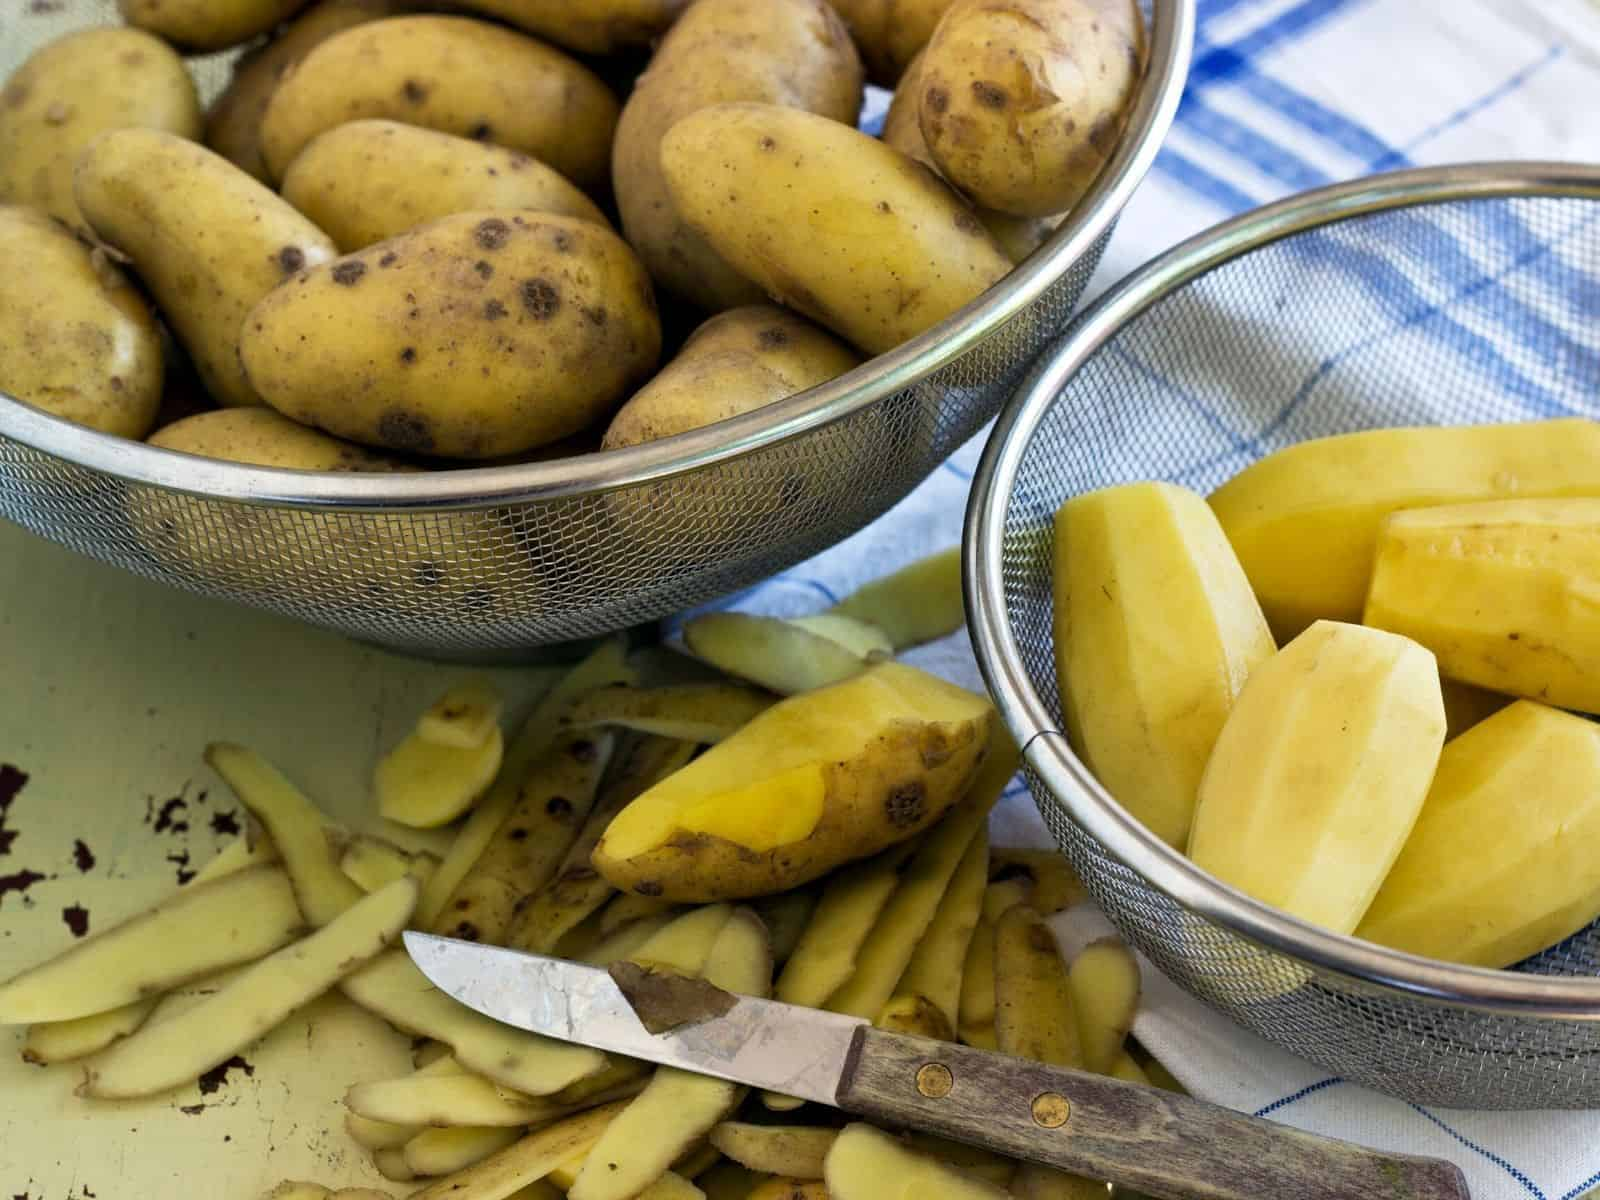 yellow potatoes cut and peeled in strainers.